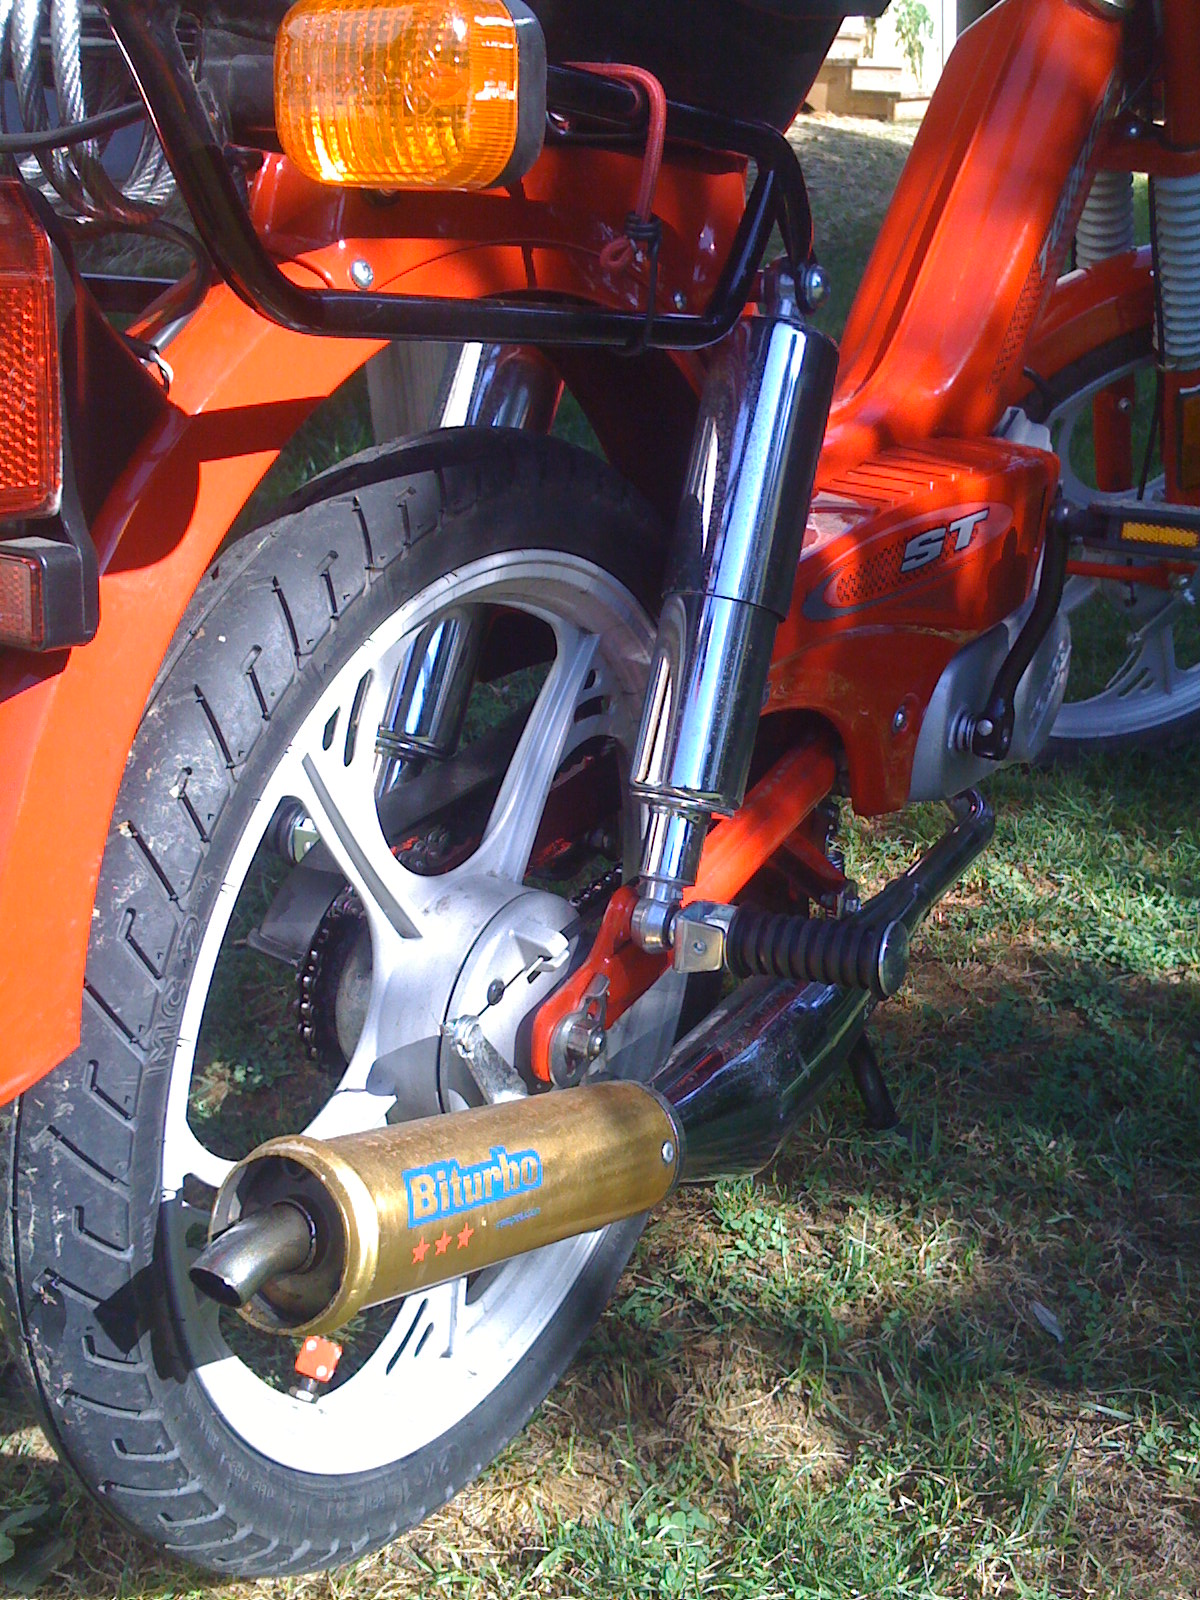 Moped Porn @ Anthocore » Streetmate Shocks